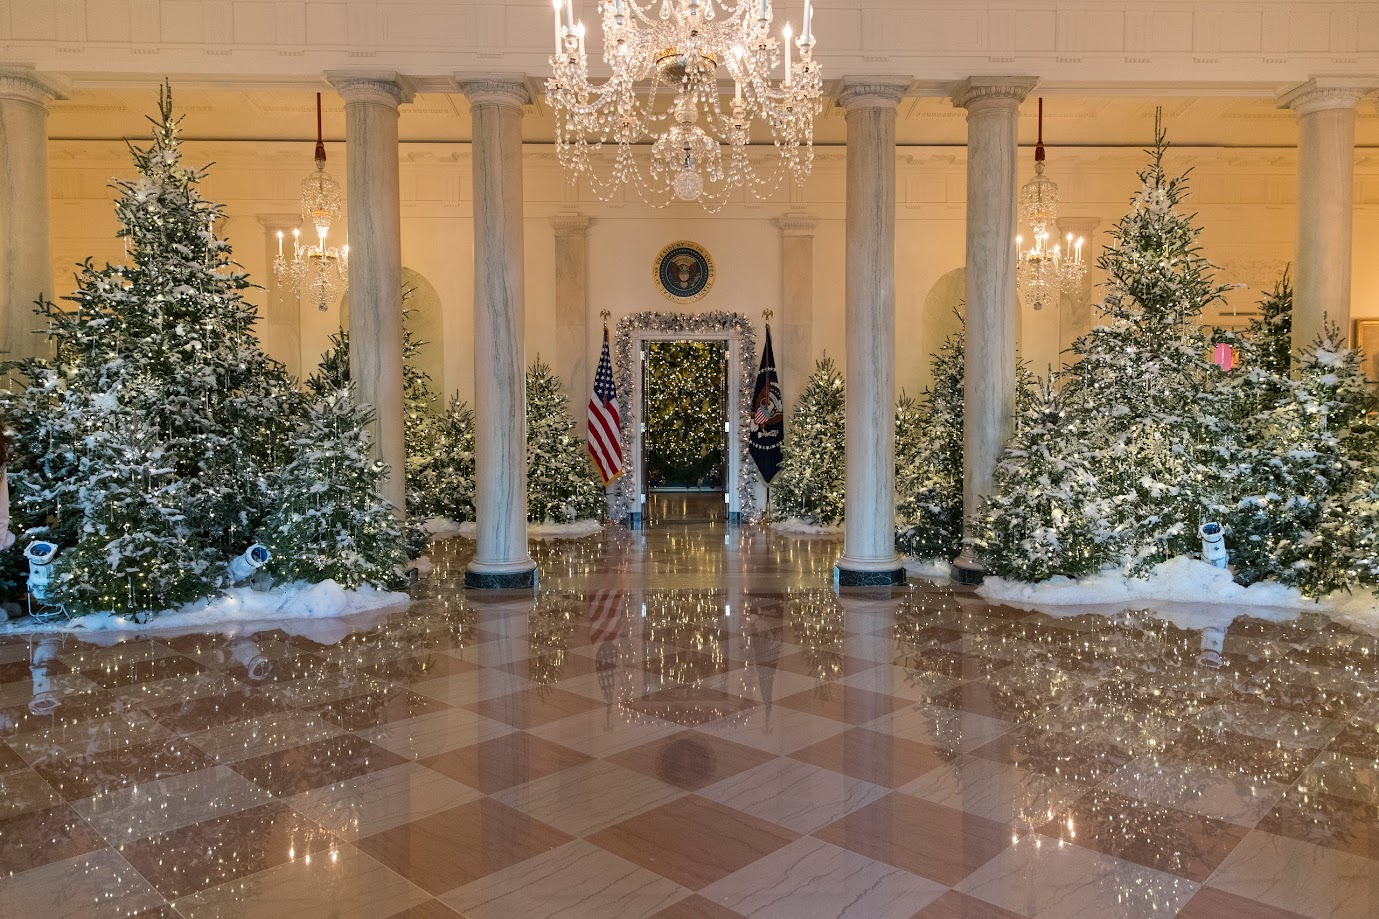 Melania looks over all the decorations.